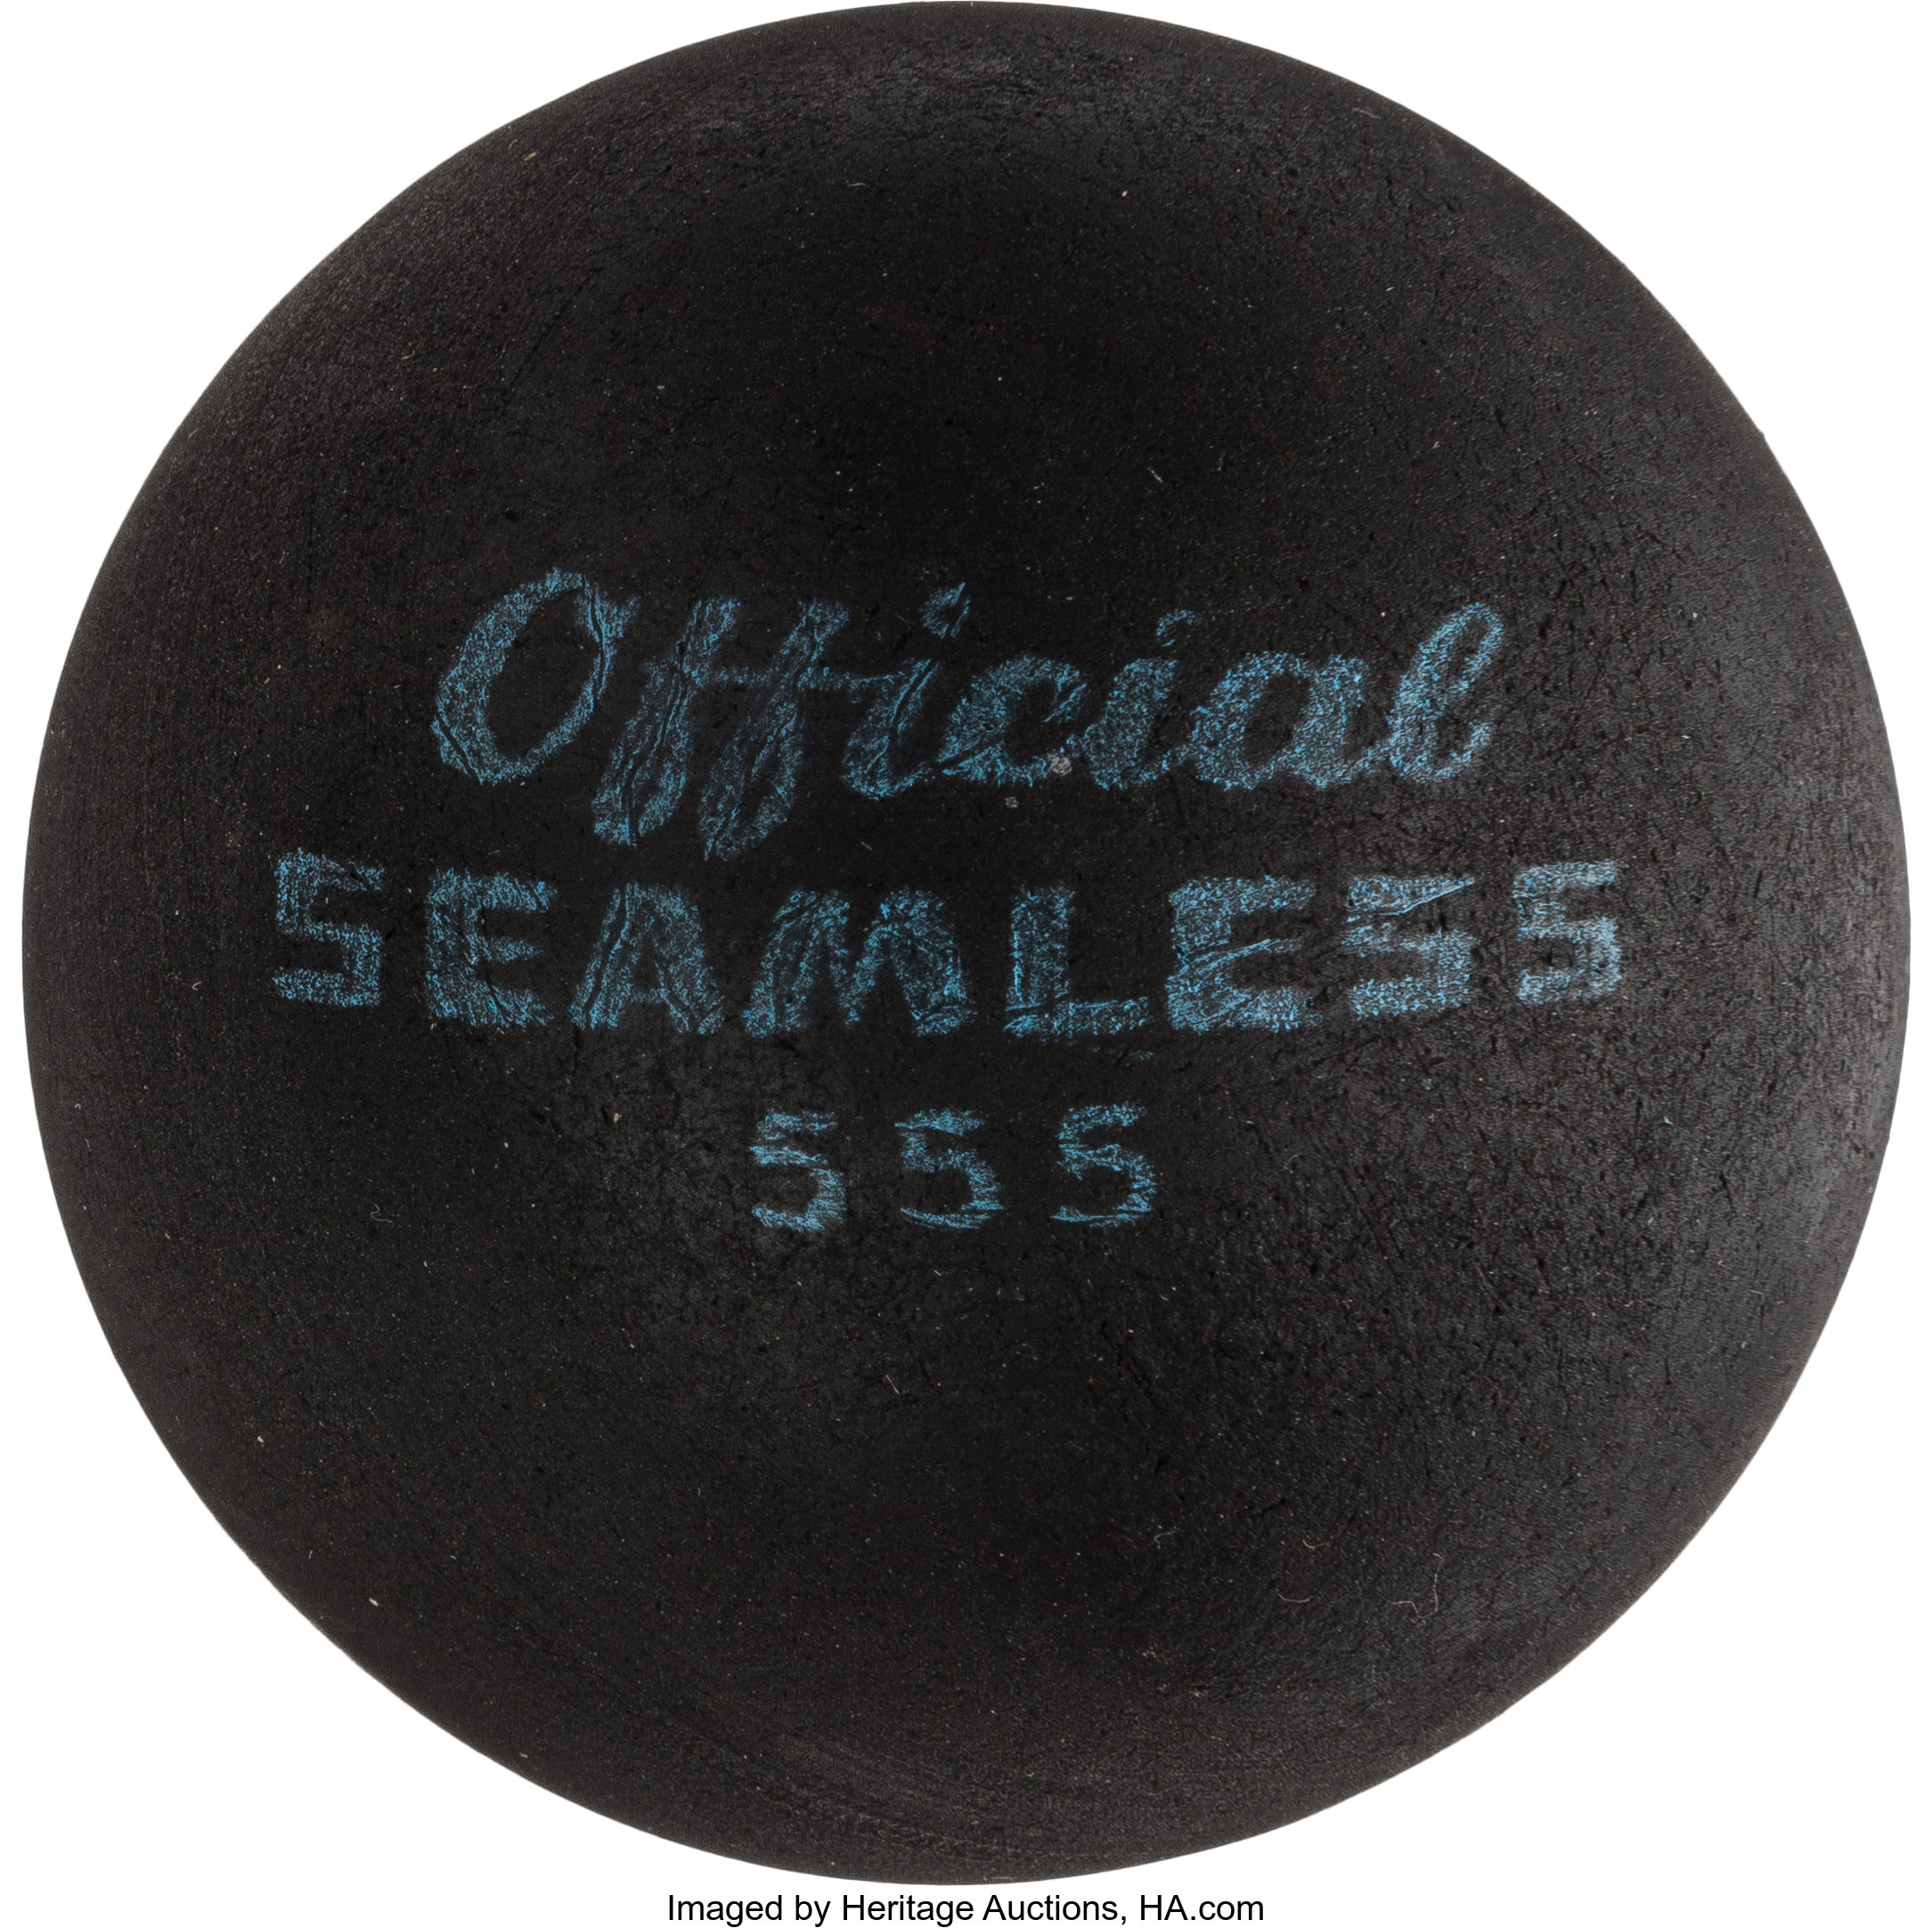 A Small Black Rubber Handball from from